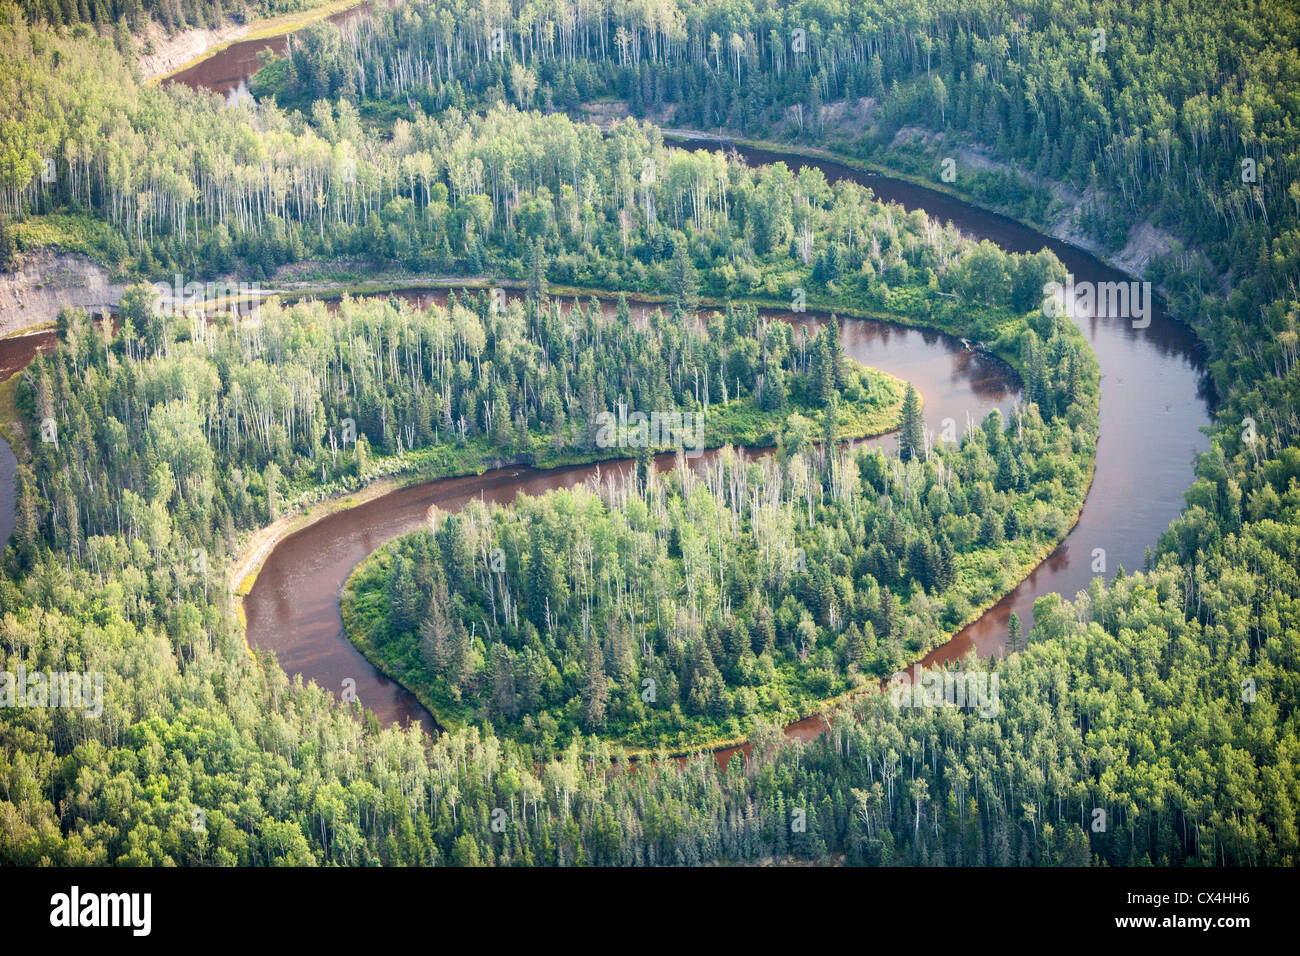 Boreal forest in Northern Alberta, Canada near Fort McMurray. - Stock Image